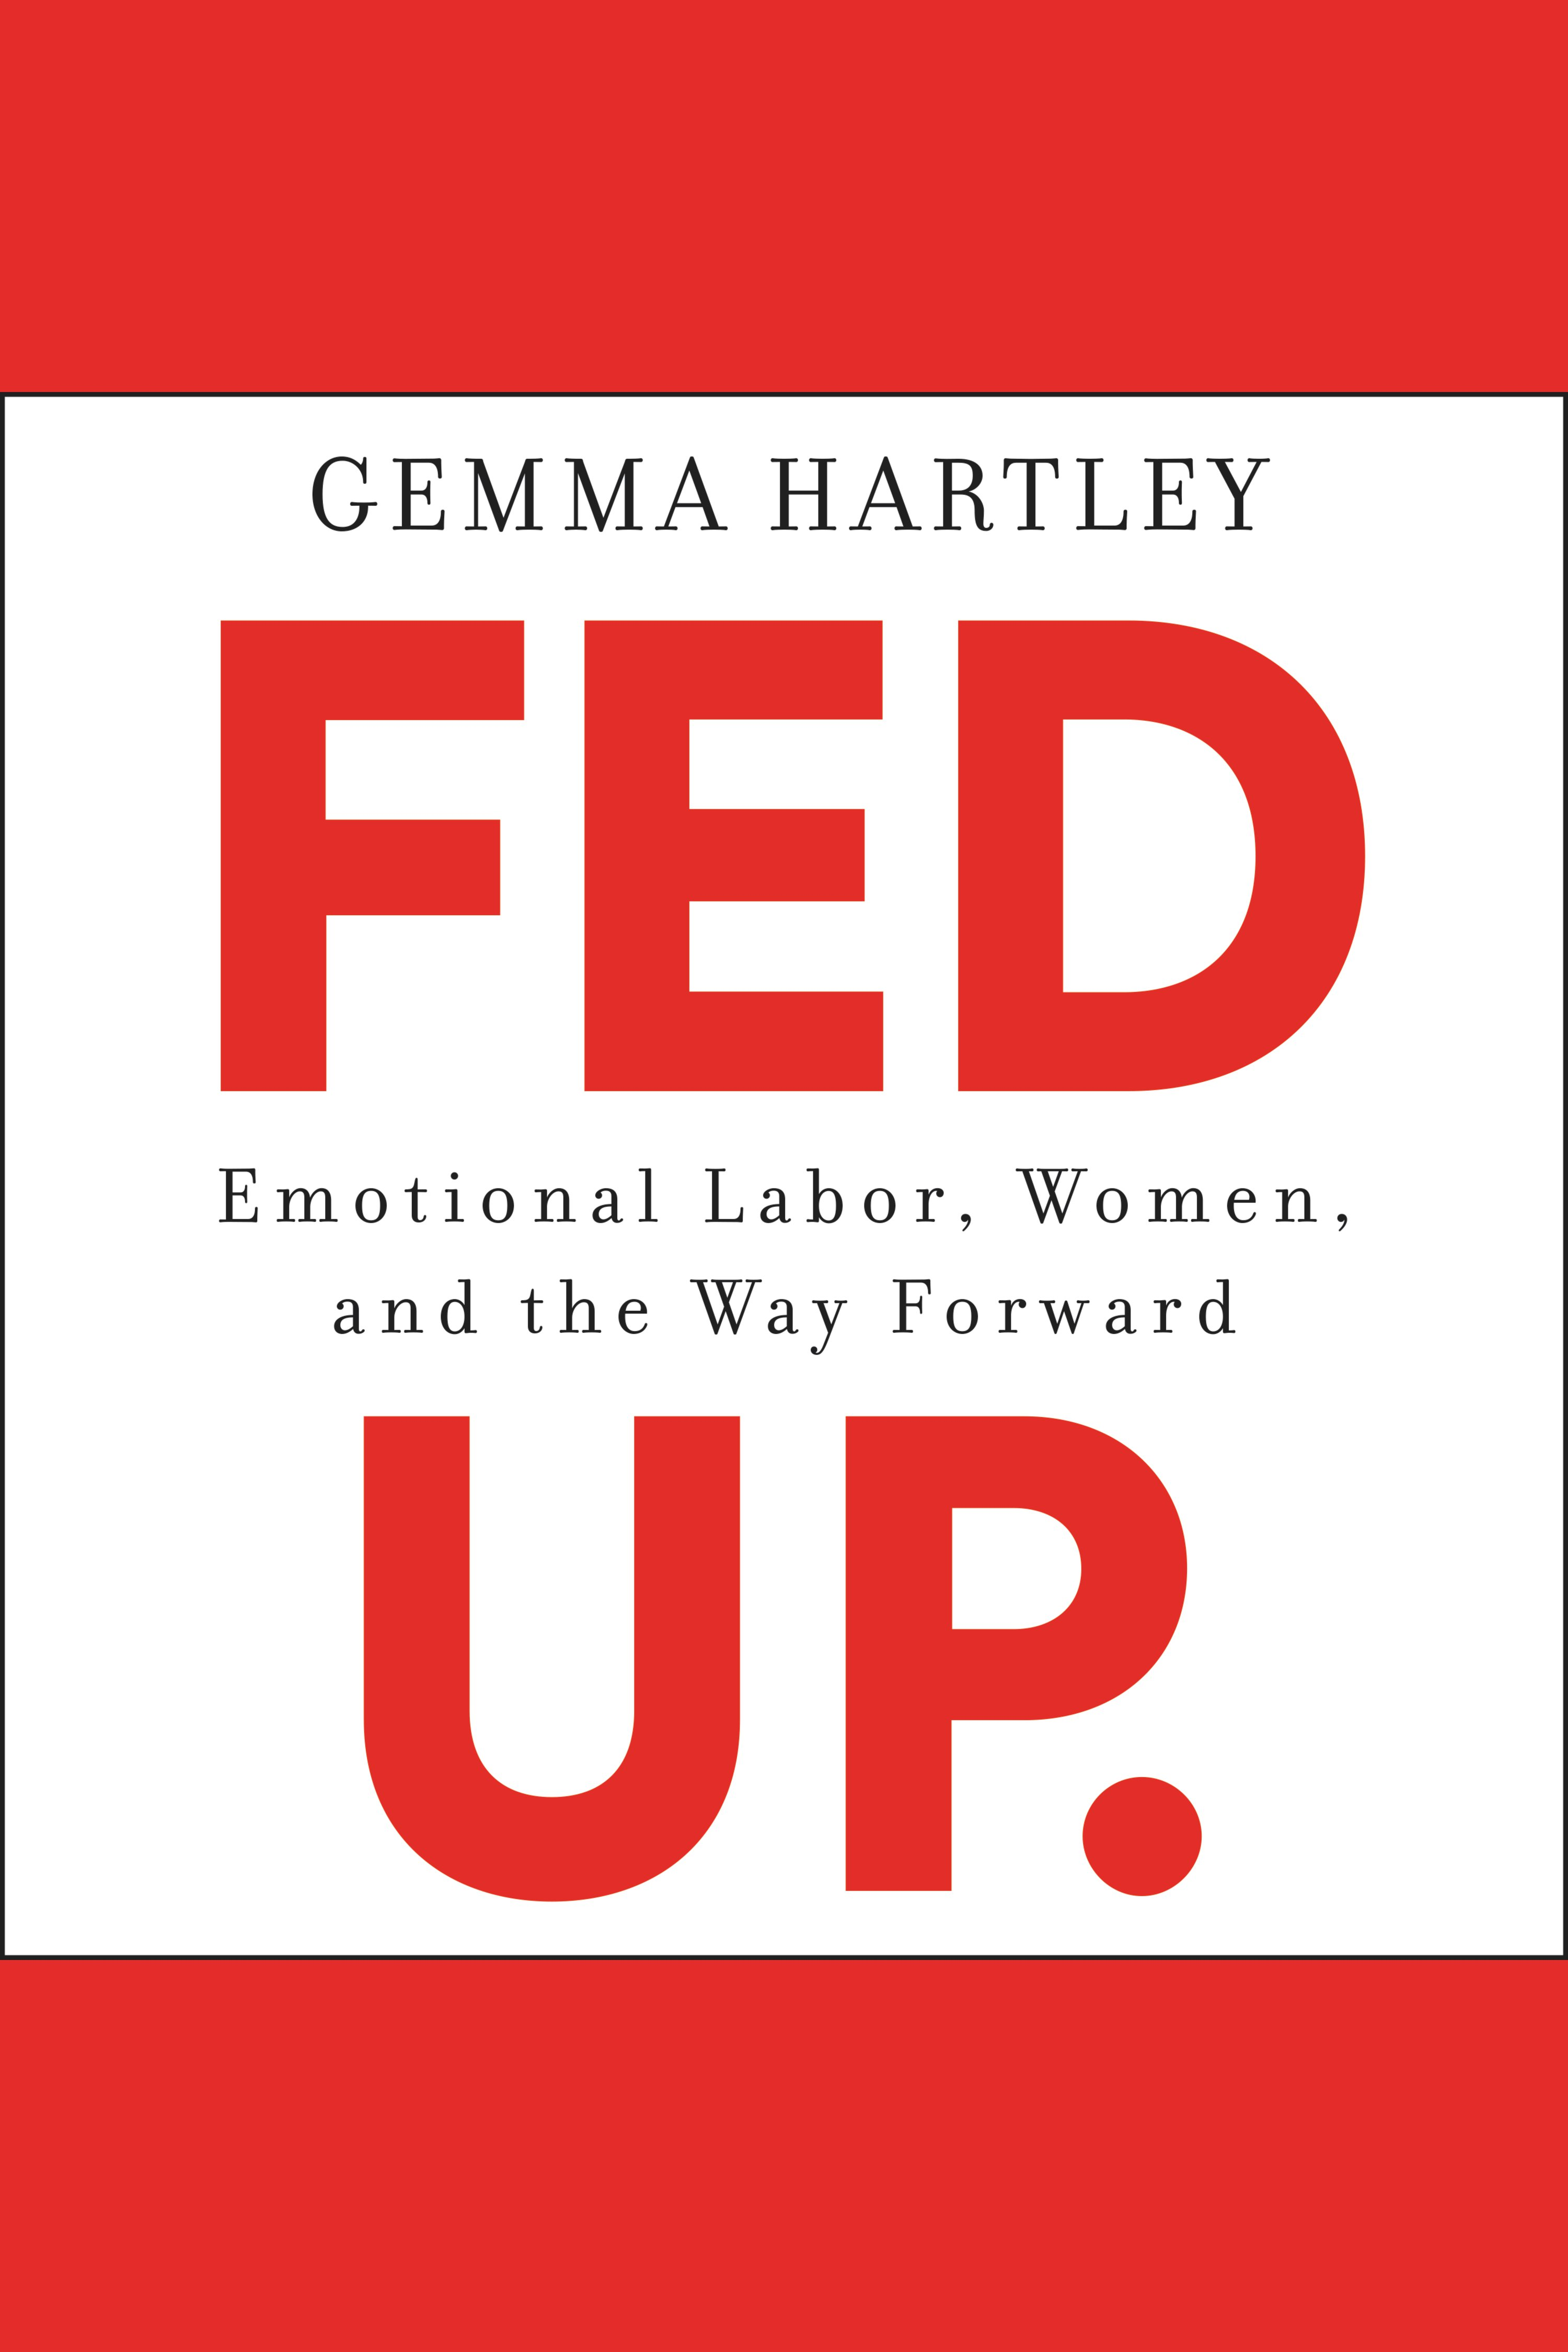 Fed Up Emotional Labor, Women, and the Way Forward